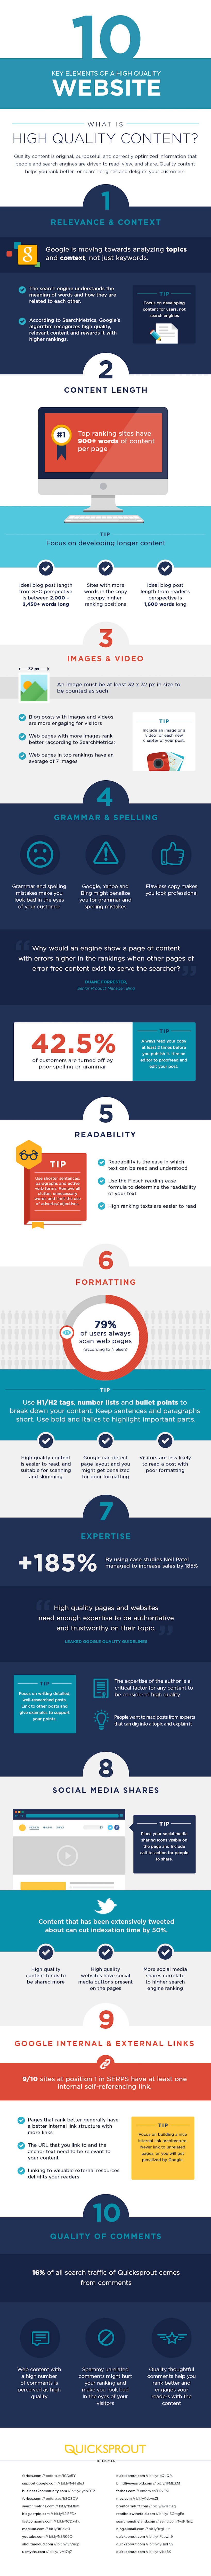 Infographic: 10 key elements to a high quality website